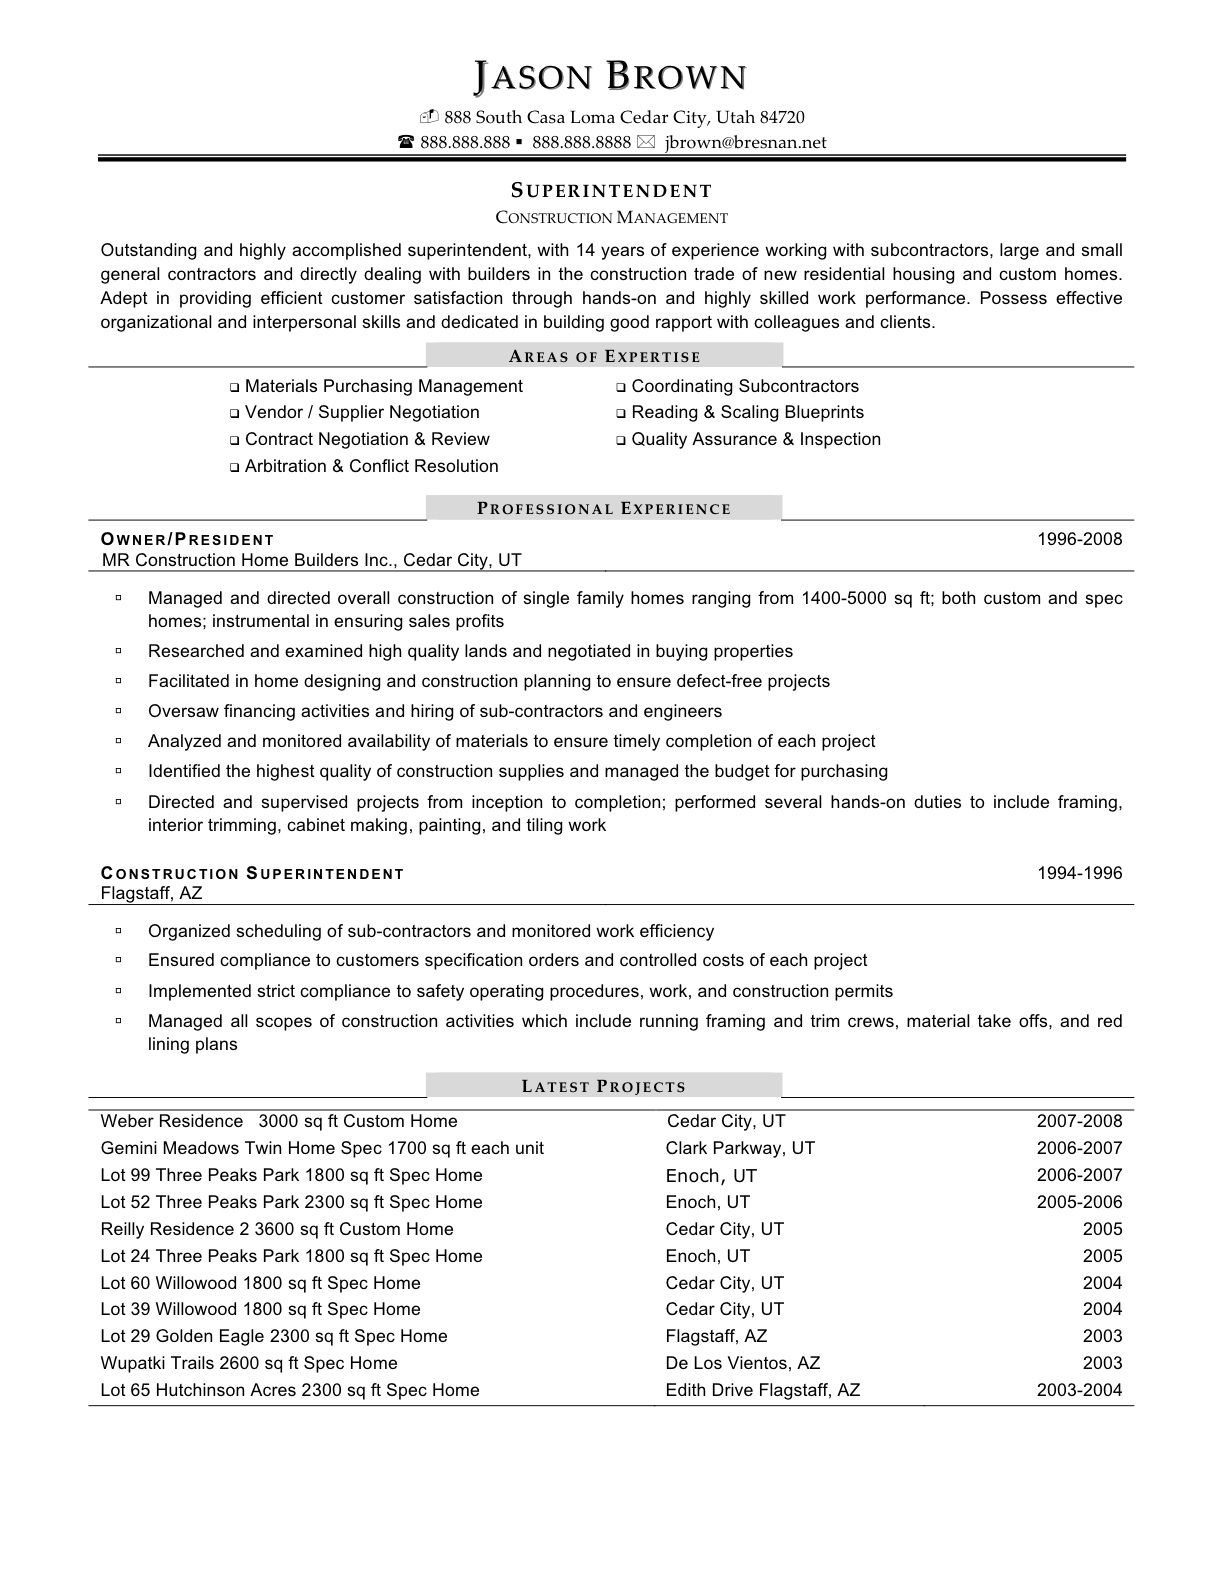 Aaaaeroincus Goodlooking Best Resume Examples For Your Job Search  Livecareer With Enchanting Example Of Resume Objectives  Construction Resume Sample